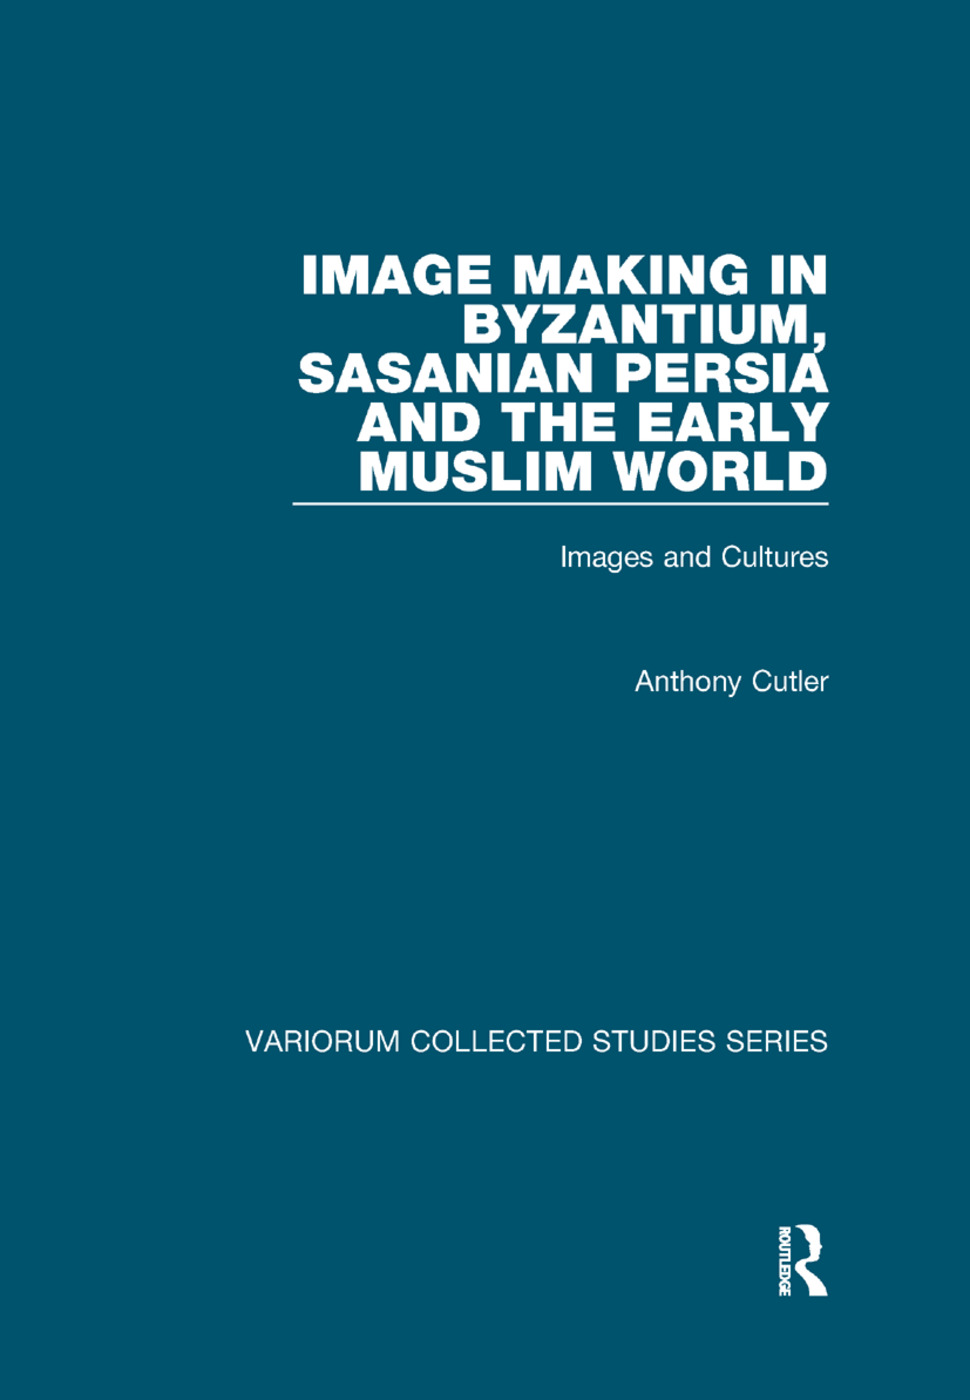 Image Making in Byzantium, Sasanian Persia and the Early Muslim World: Images and Cultures book cover